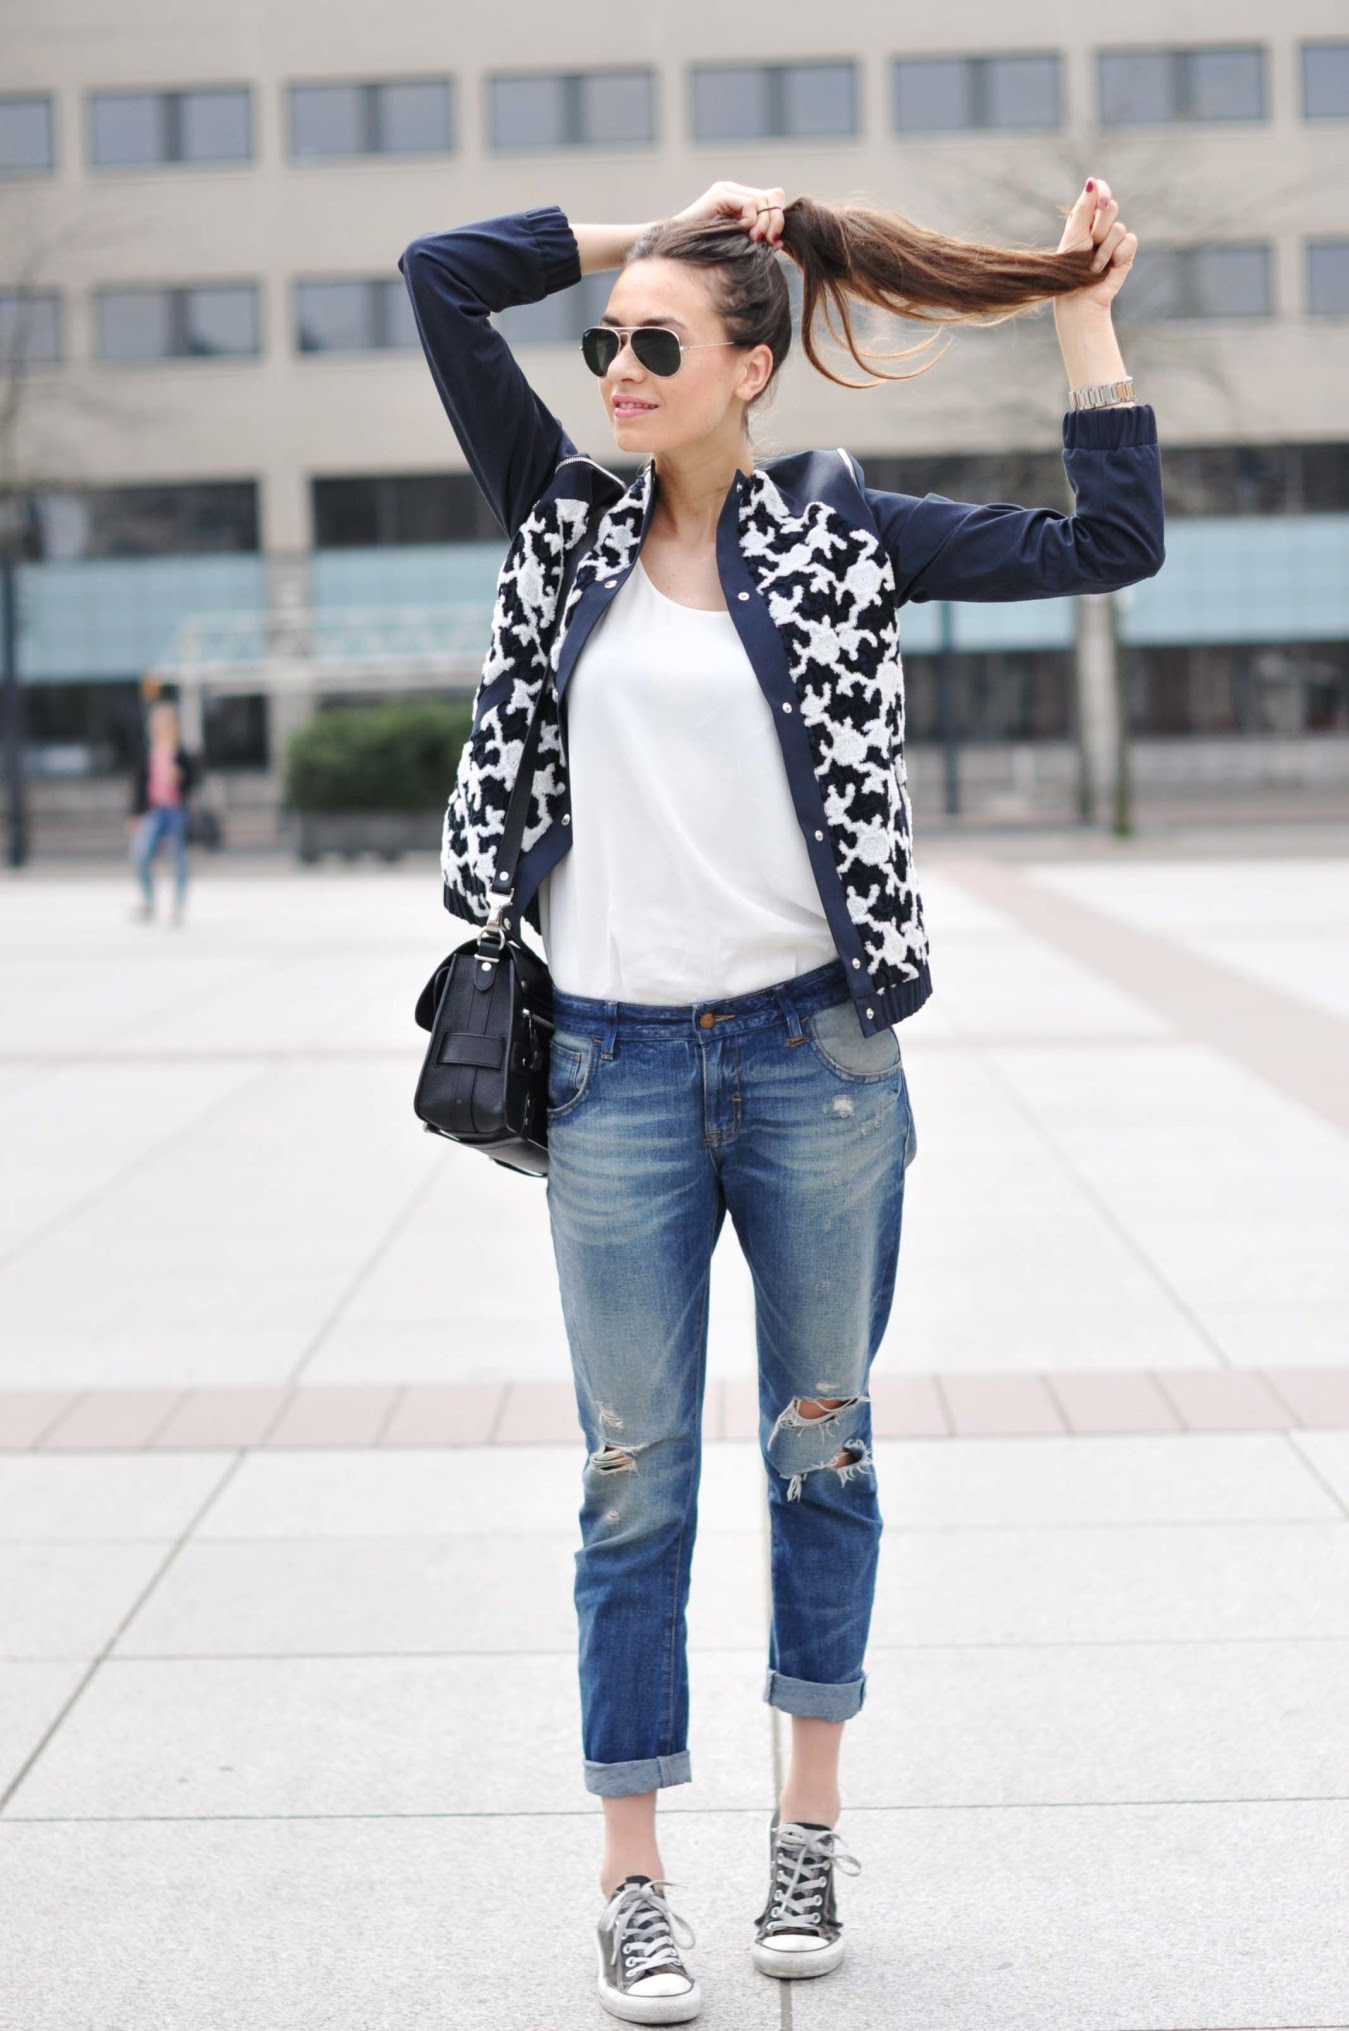 phenomenal jeans outfit ideas with sneakers  ohh my my